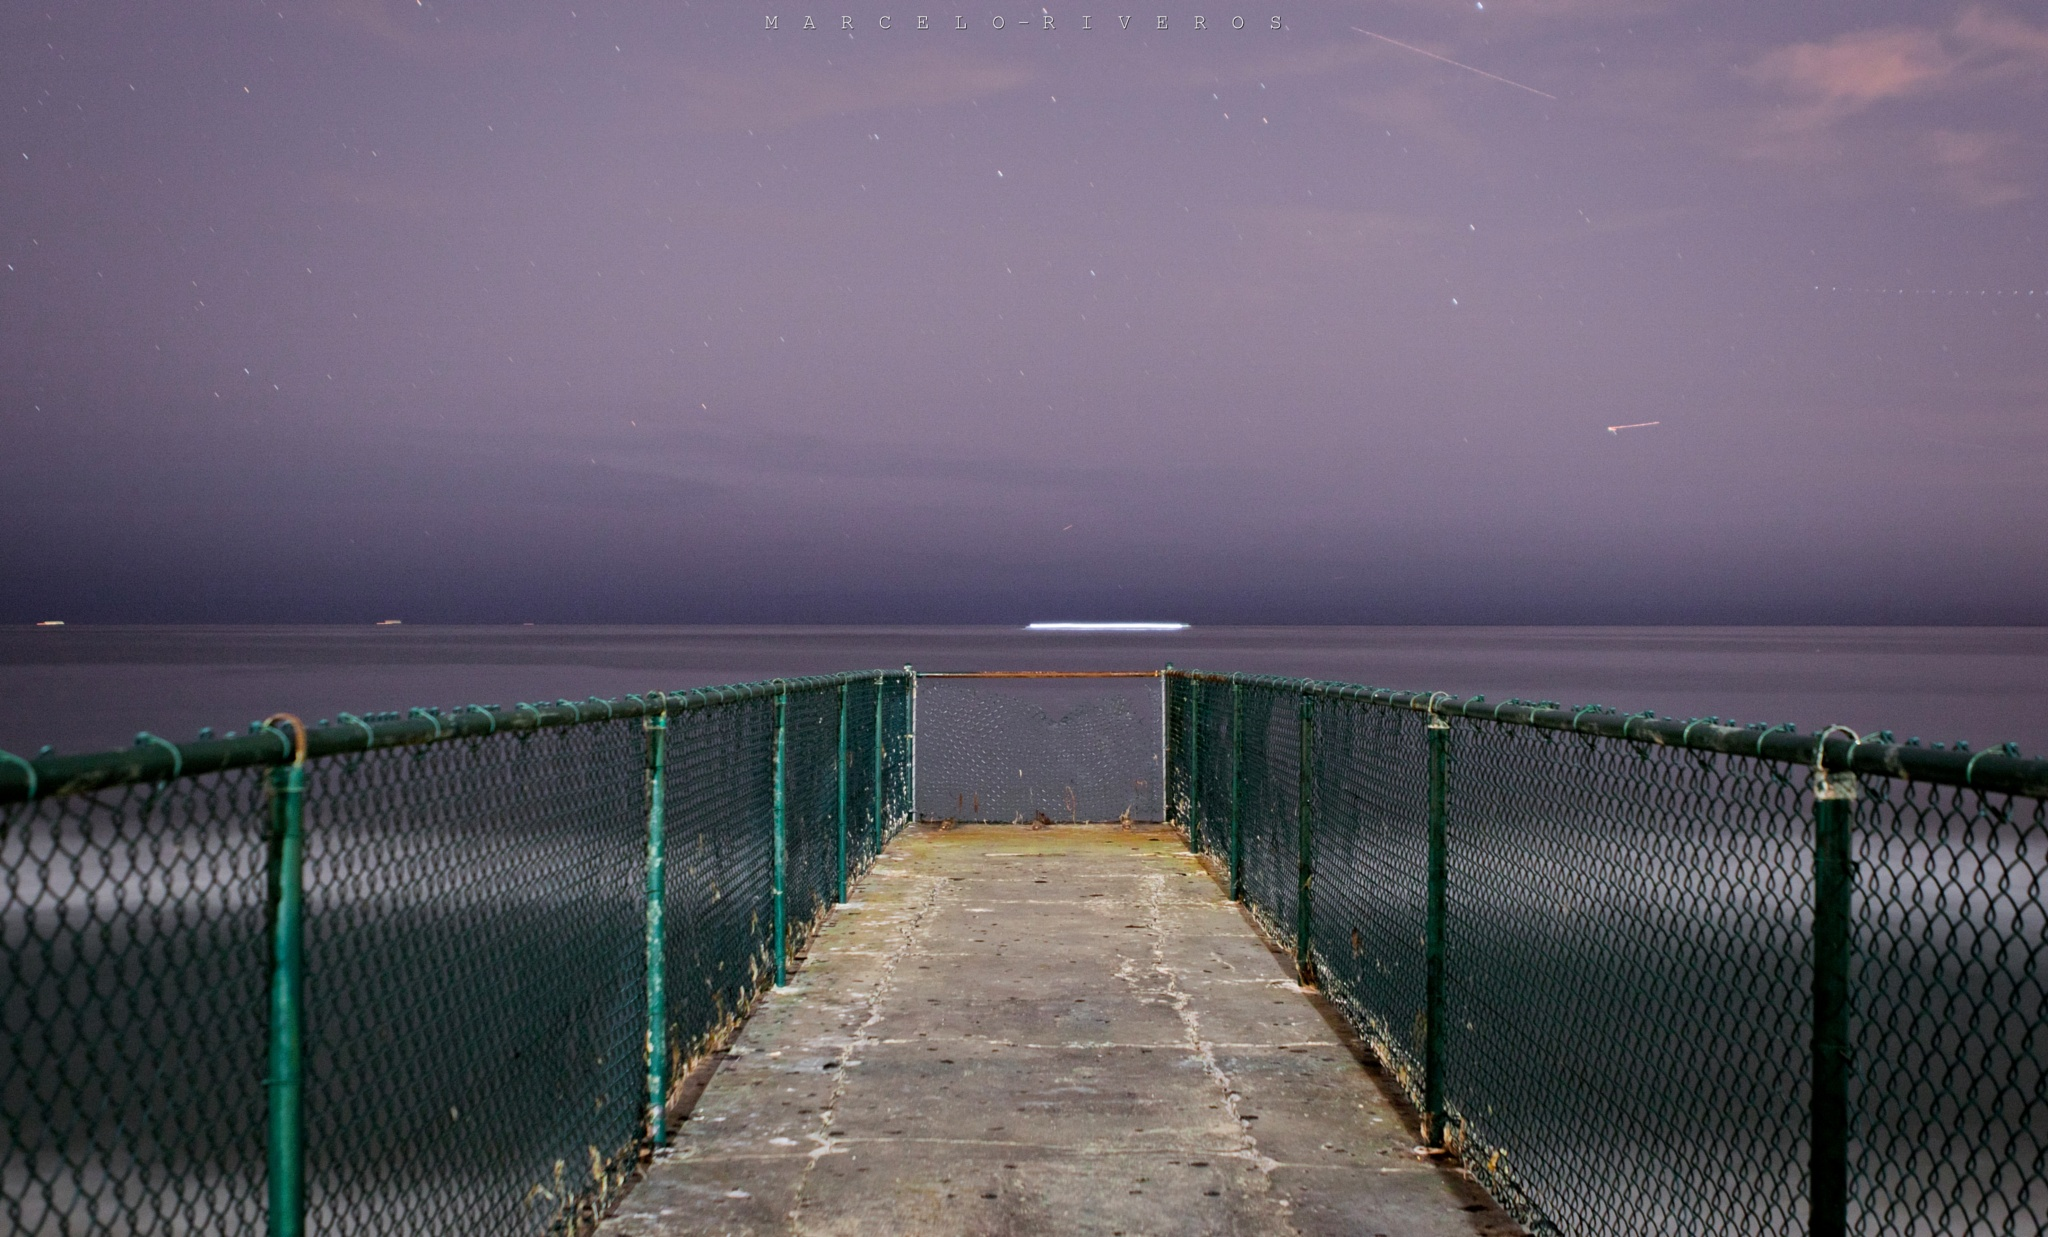 Night Shot by Marcelo Riveros